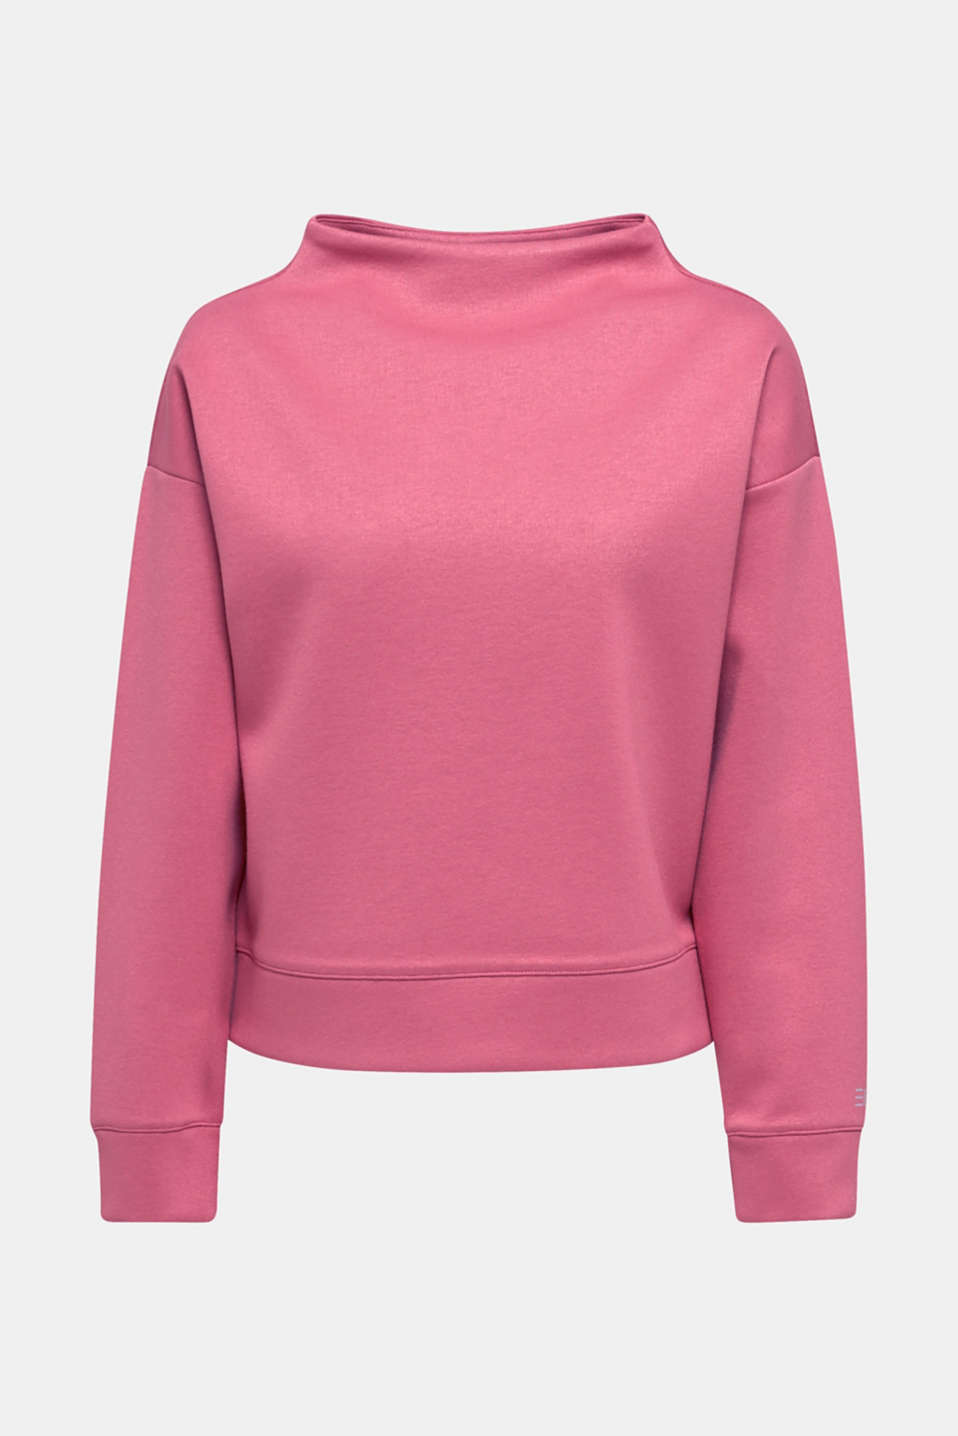 Compact sweatshirt with a stand-up collar, BLUSH, detail image number 7